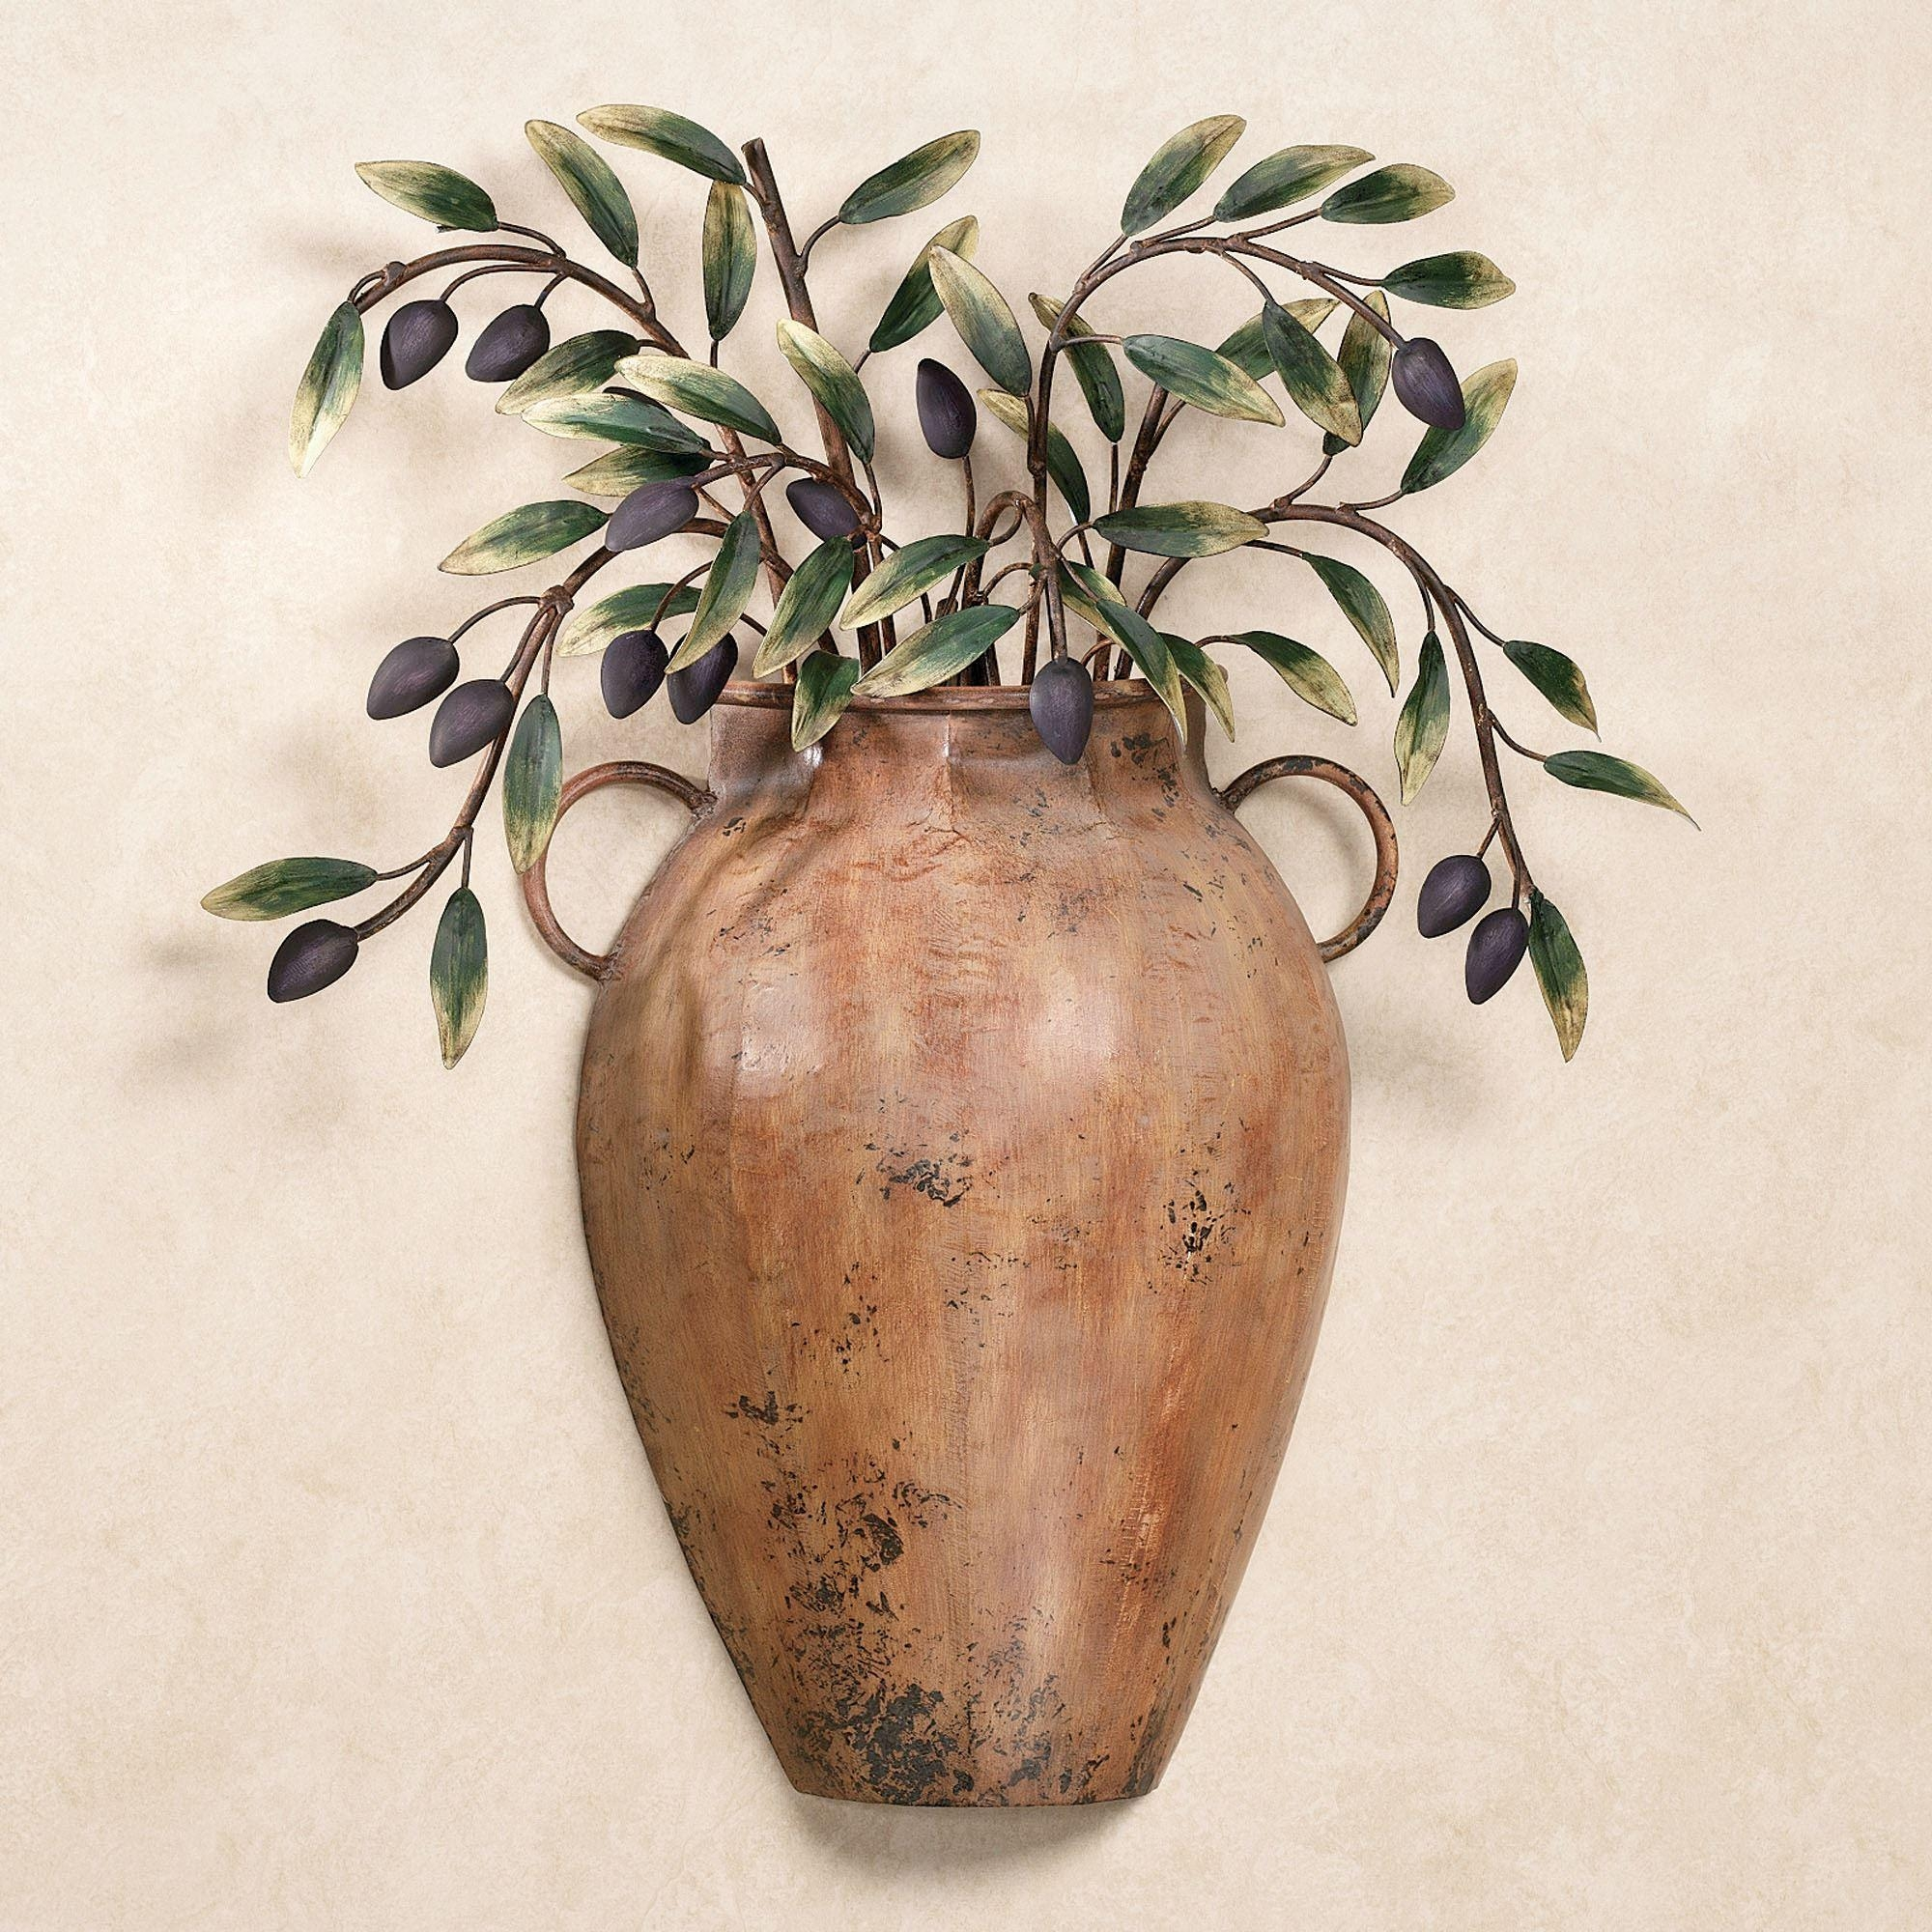 Valetta Vaso Con Olives Metal Wall Sculpture In Italian Plates Wall Art Sets (View 17 of 20)